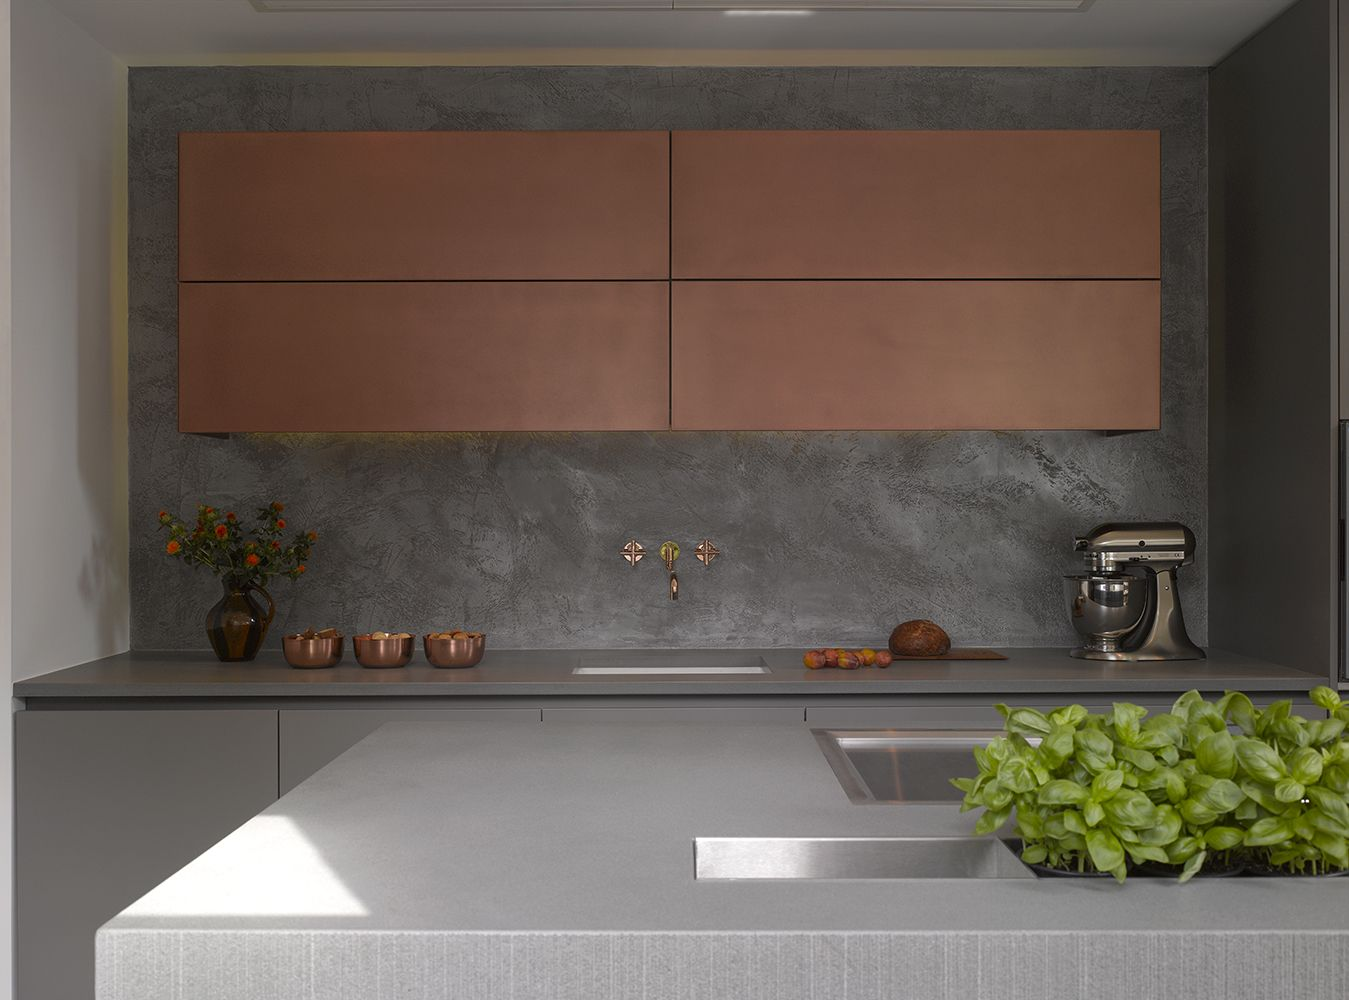 best 25 kitchen showroom ideas on pinterest luxury kitchen roundhouse urbo luxury bespoke kitchen with wall cabinets in burnished copper metallic matt lacquer worksurface